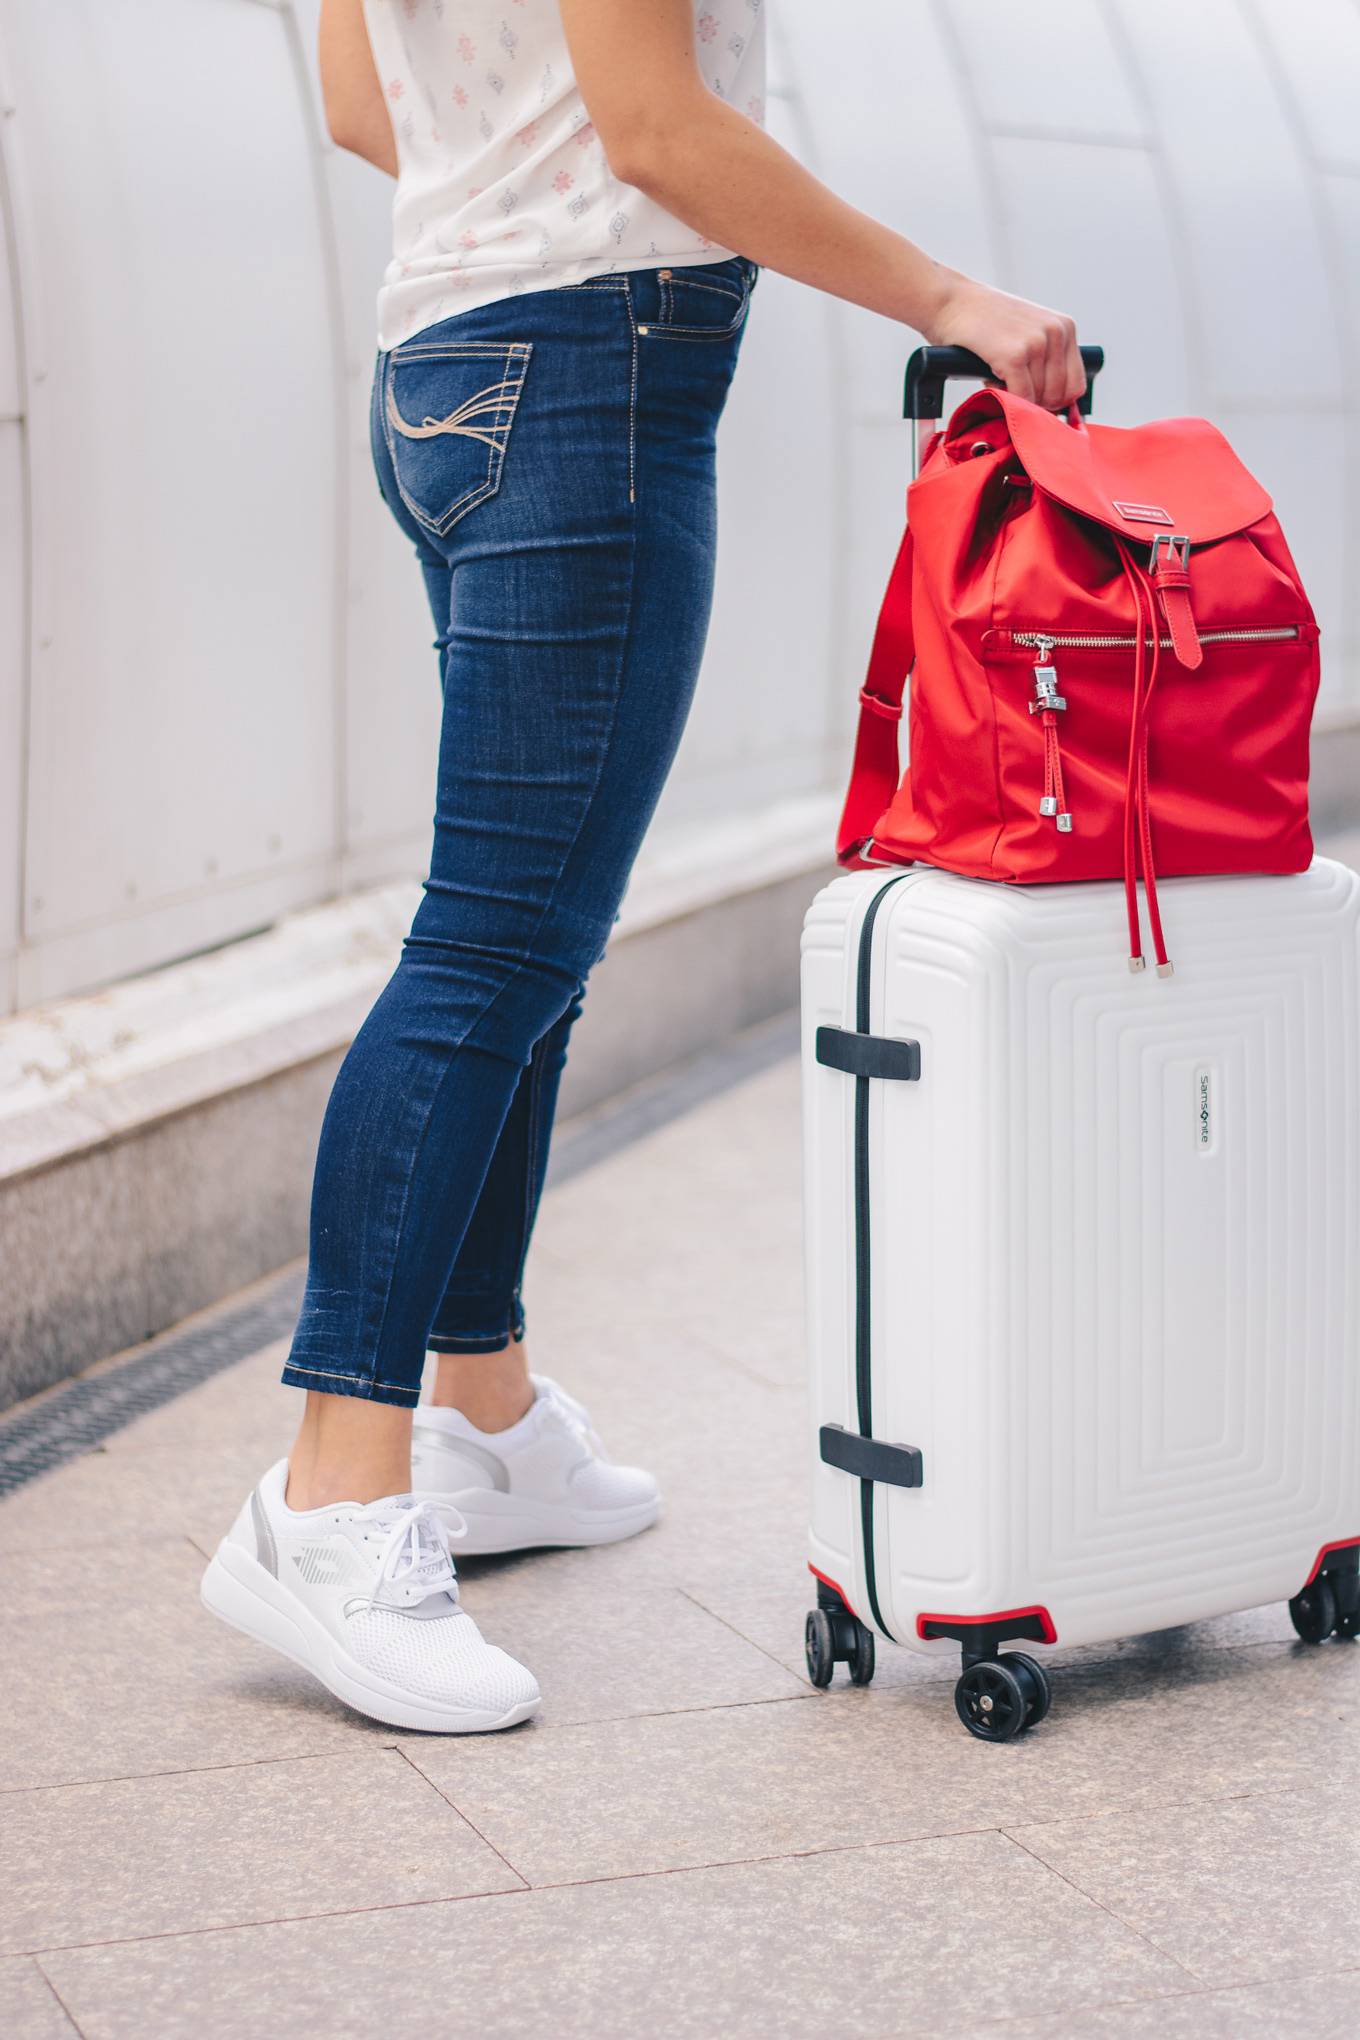 travel in style with Samsonite luggage